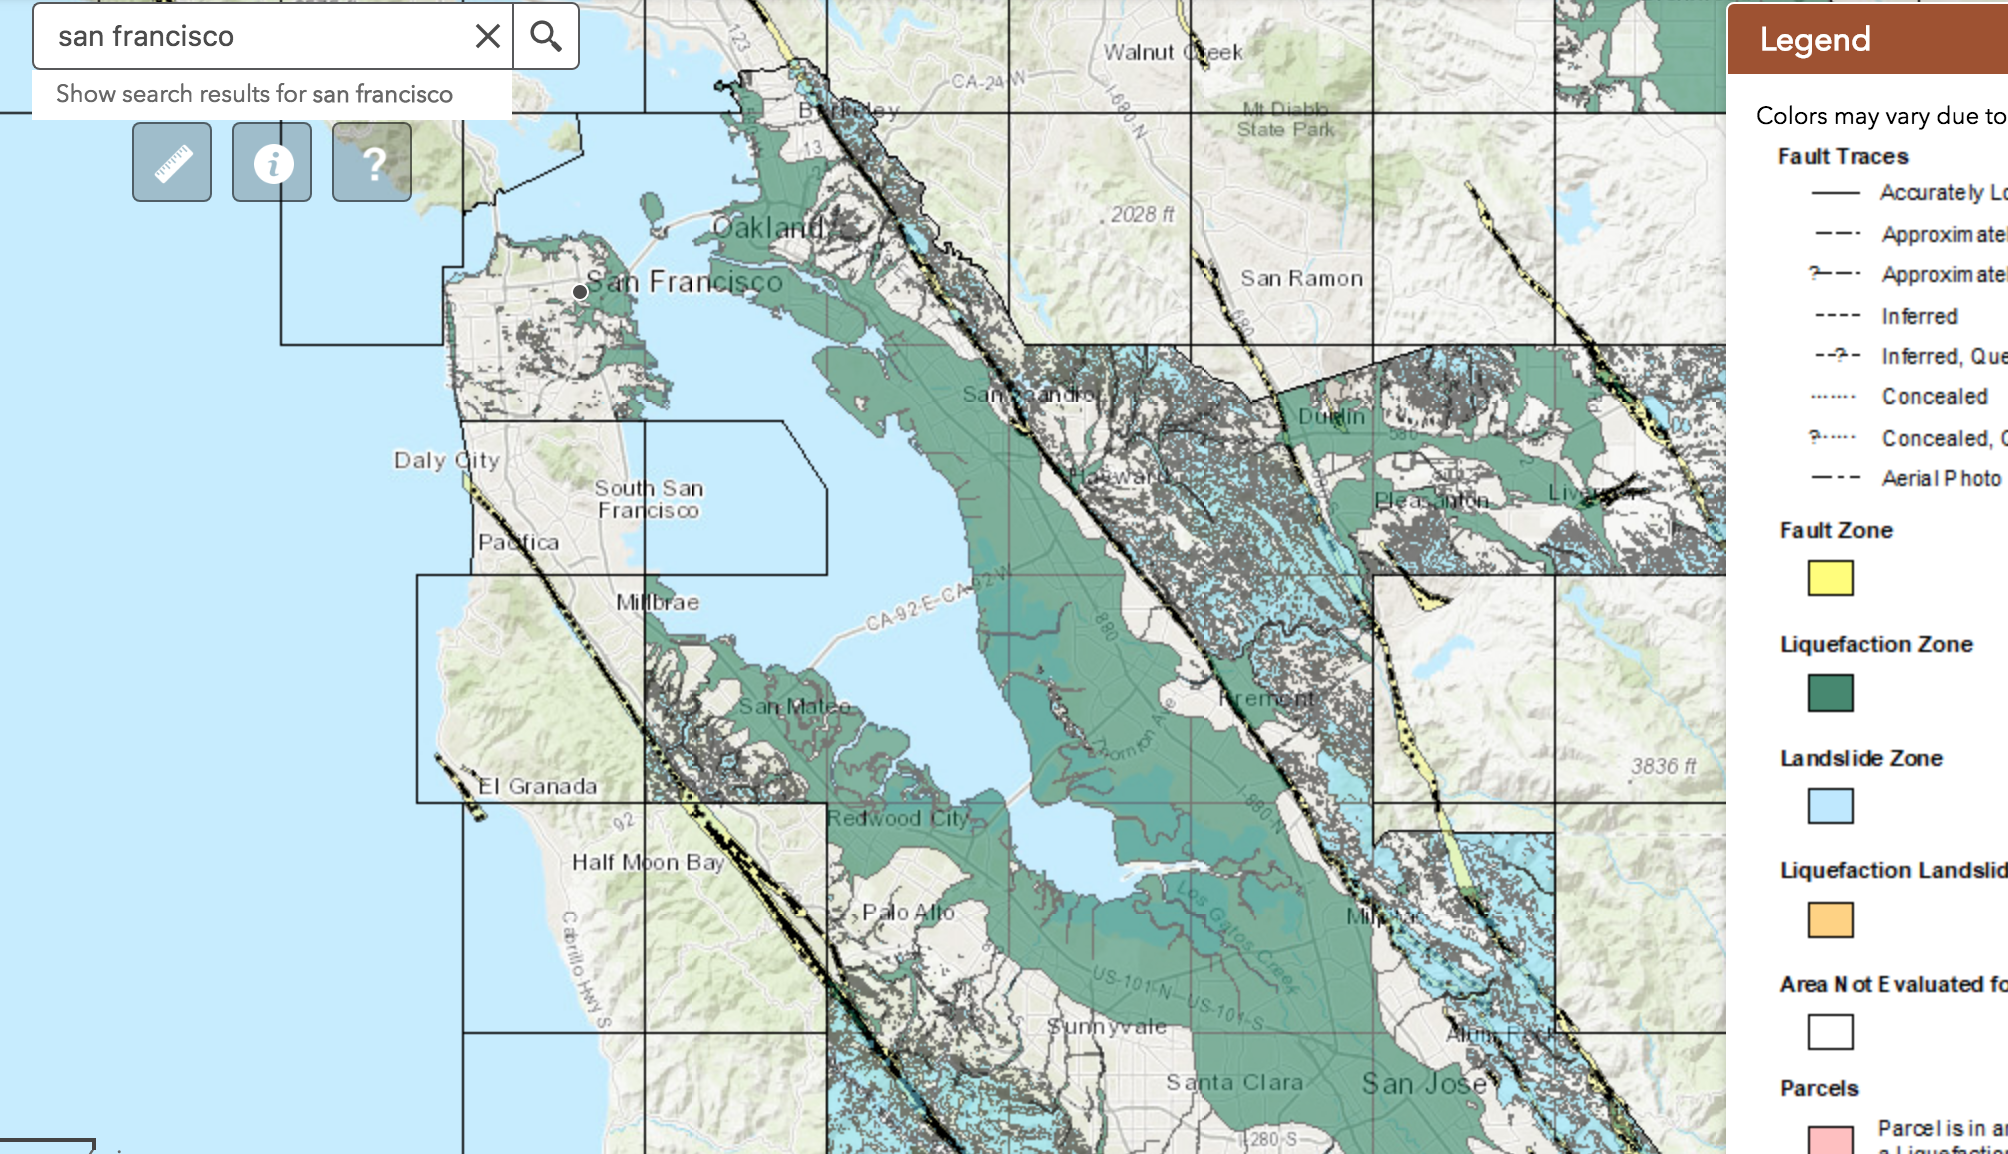 Worried about being on top of an earthquake fault? New ... on van nuys ca map, san fernando ca map, la tuna canyon ca map, united states ca map, conejo valley ca map, santa clarita ca map, lake forest ca map, cardiff by the sea ca map, downey ca map, east la ca map, la conchita ca map, arrowbear ca map, puente hills ca map, verdugo hills ca map, hammil valley ca map, goffs ca map, feather falls ca map, north hills ca map, 91354 zip code map, whitethorn ca map,